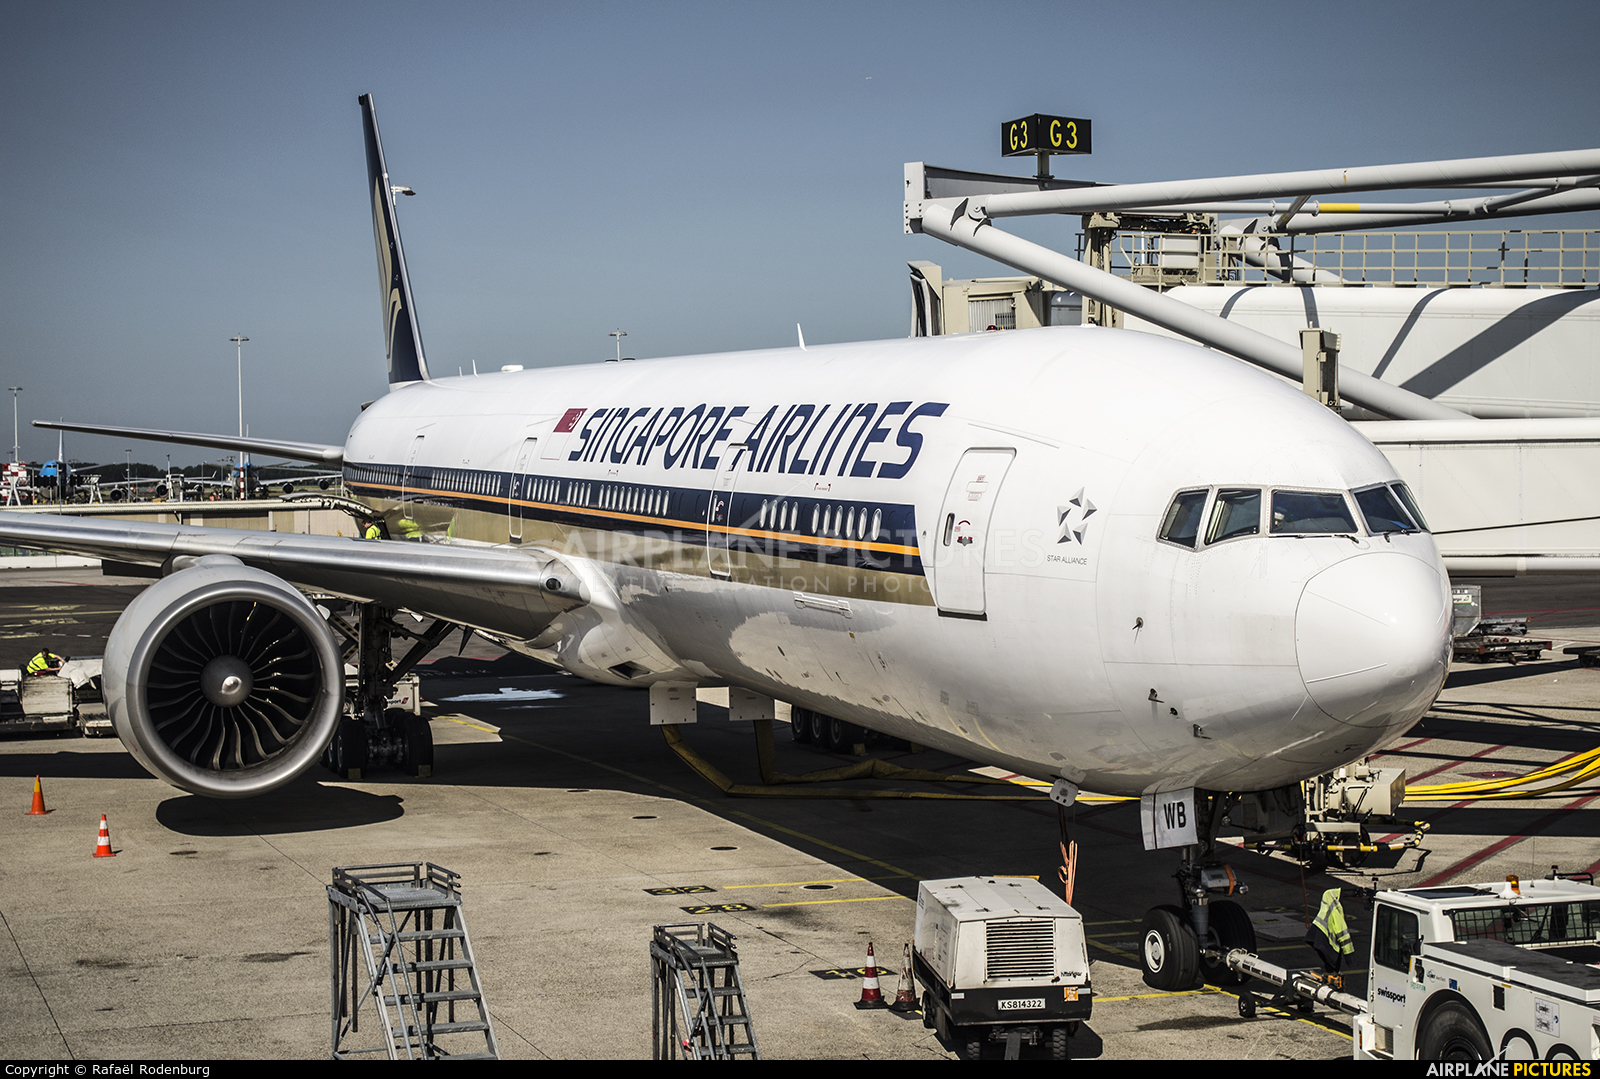 Singapore Airlines 9V-SWB aircraft at Amsterdam - Schiphol